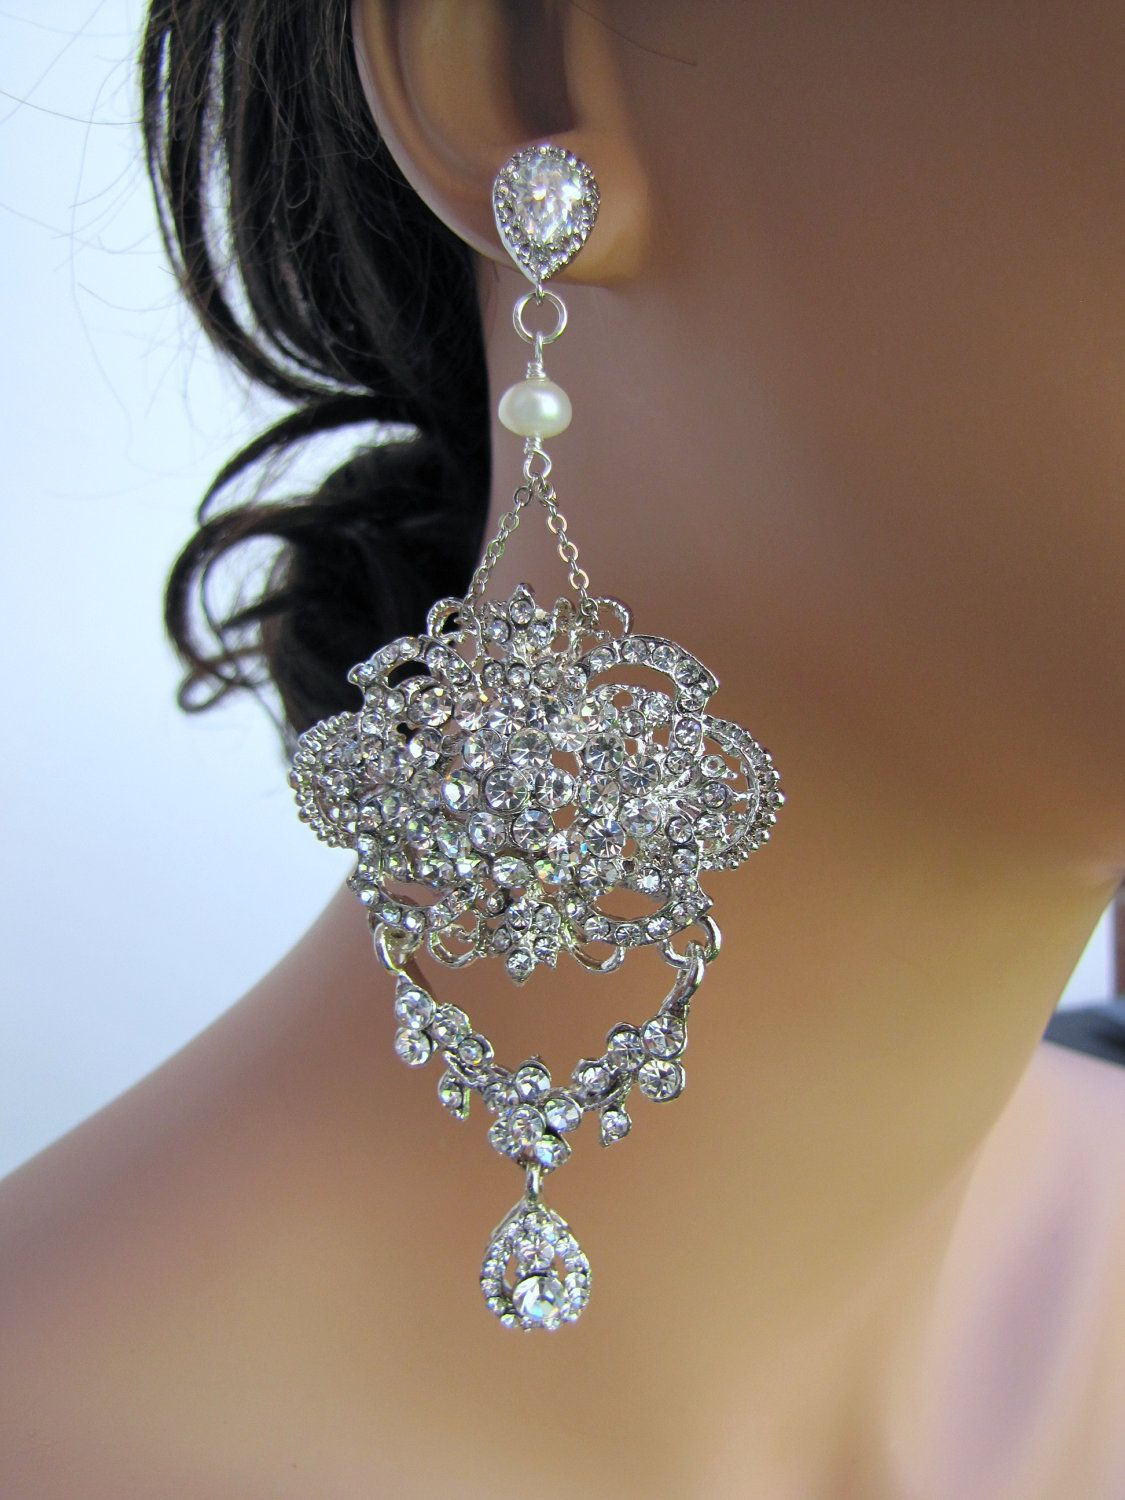 Bridal chandelier earrings wedding statement earrings for brides bridal chandelier earrings wedding statement earrings for brides large dangle earrings rhinestones arubaitofo Choice Image